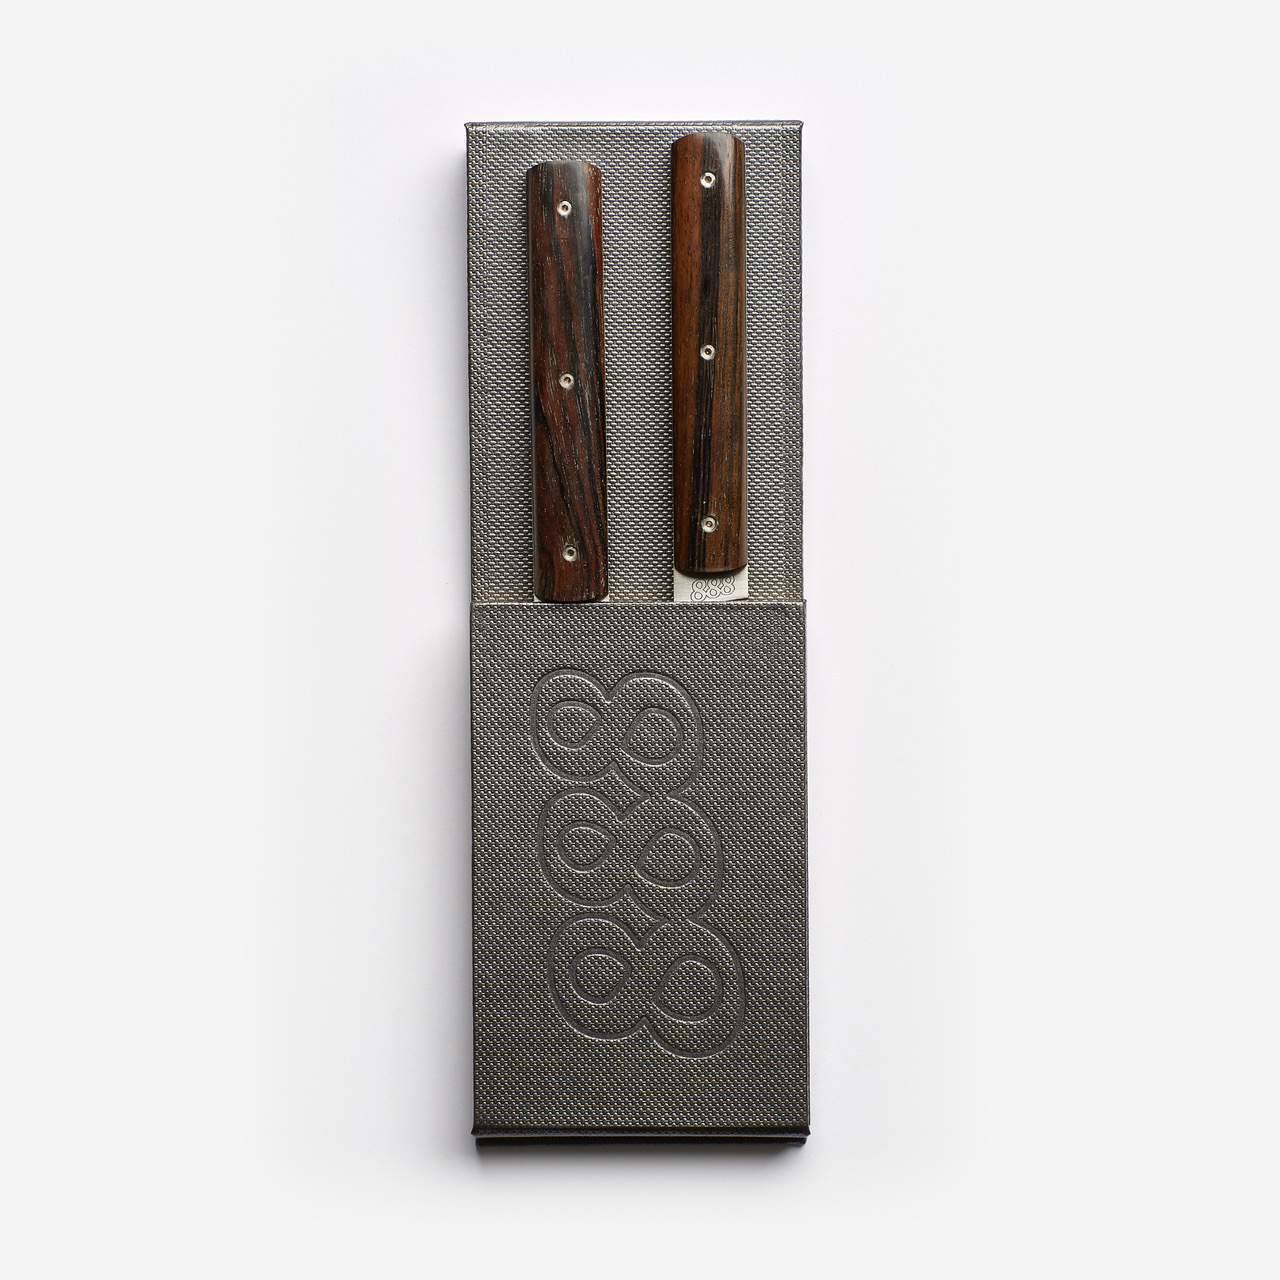 Perceval knives